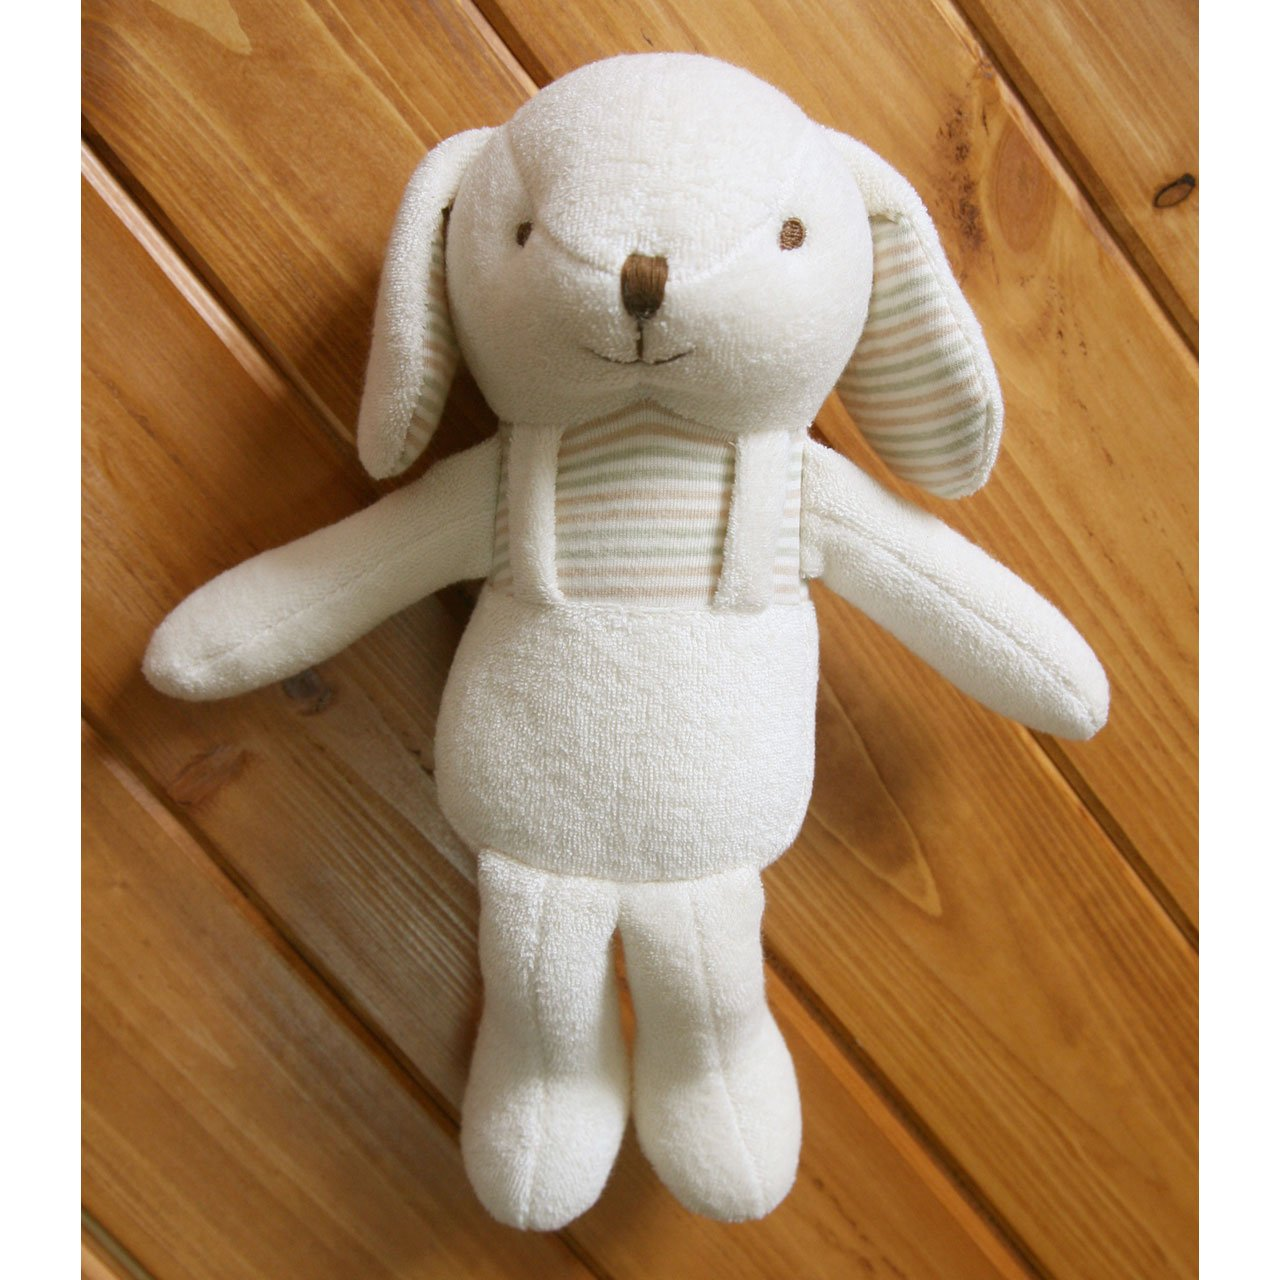 (Lovely Puppy)100% Certified Organic Cotton Baby First Doll 11 inches (No Dyeing)